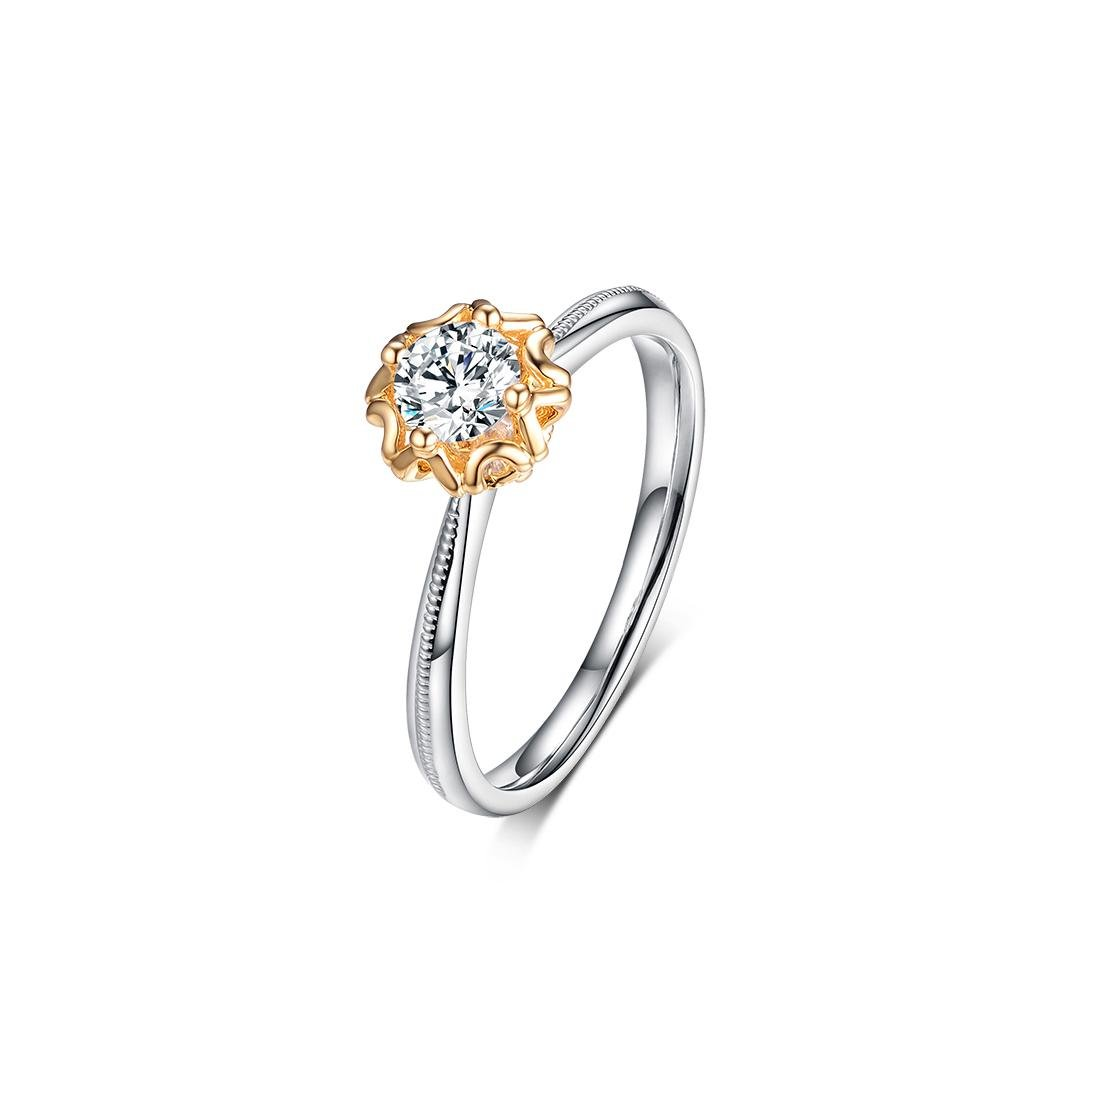 GIA Certified 18k Gold and Diamonds Engagement Ring